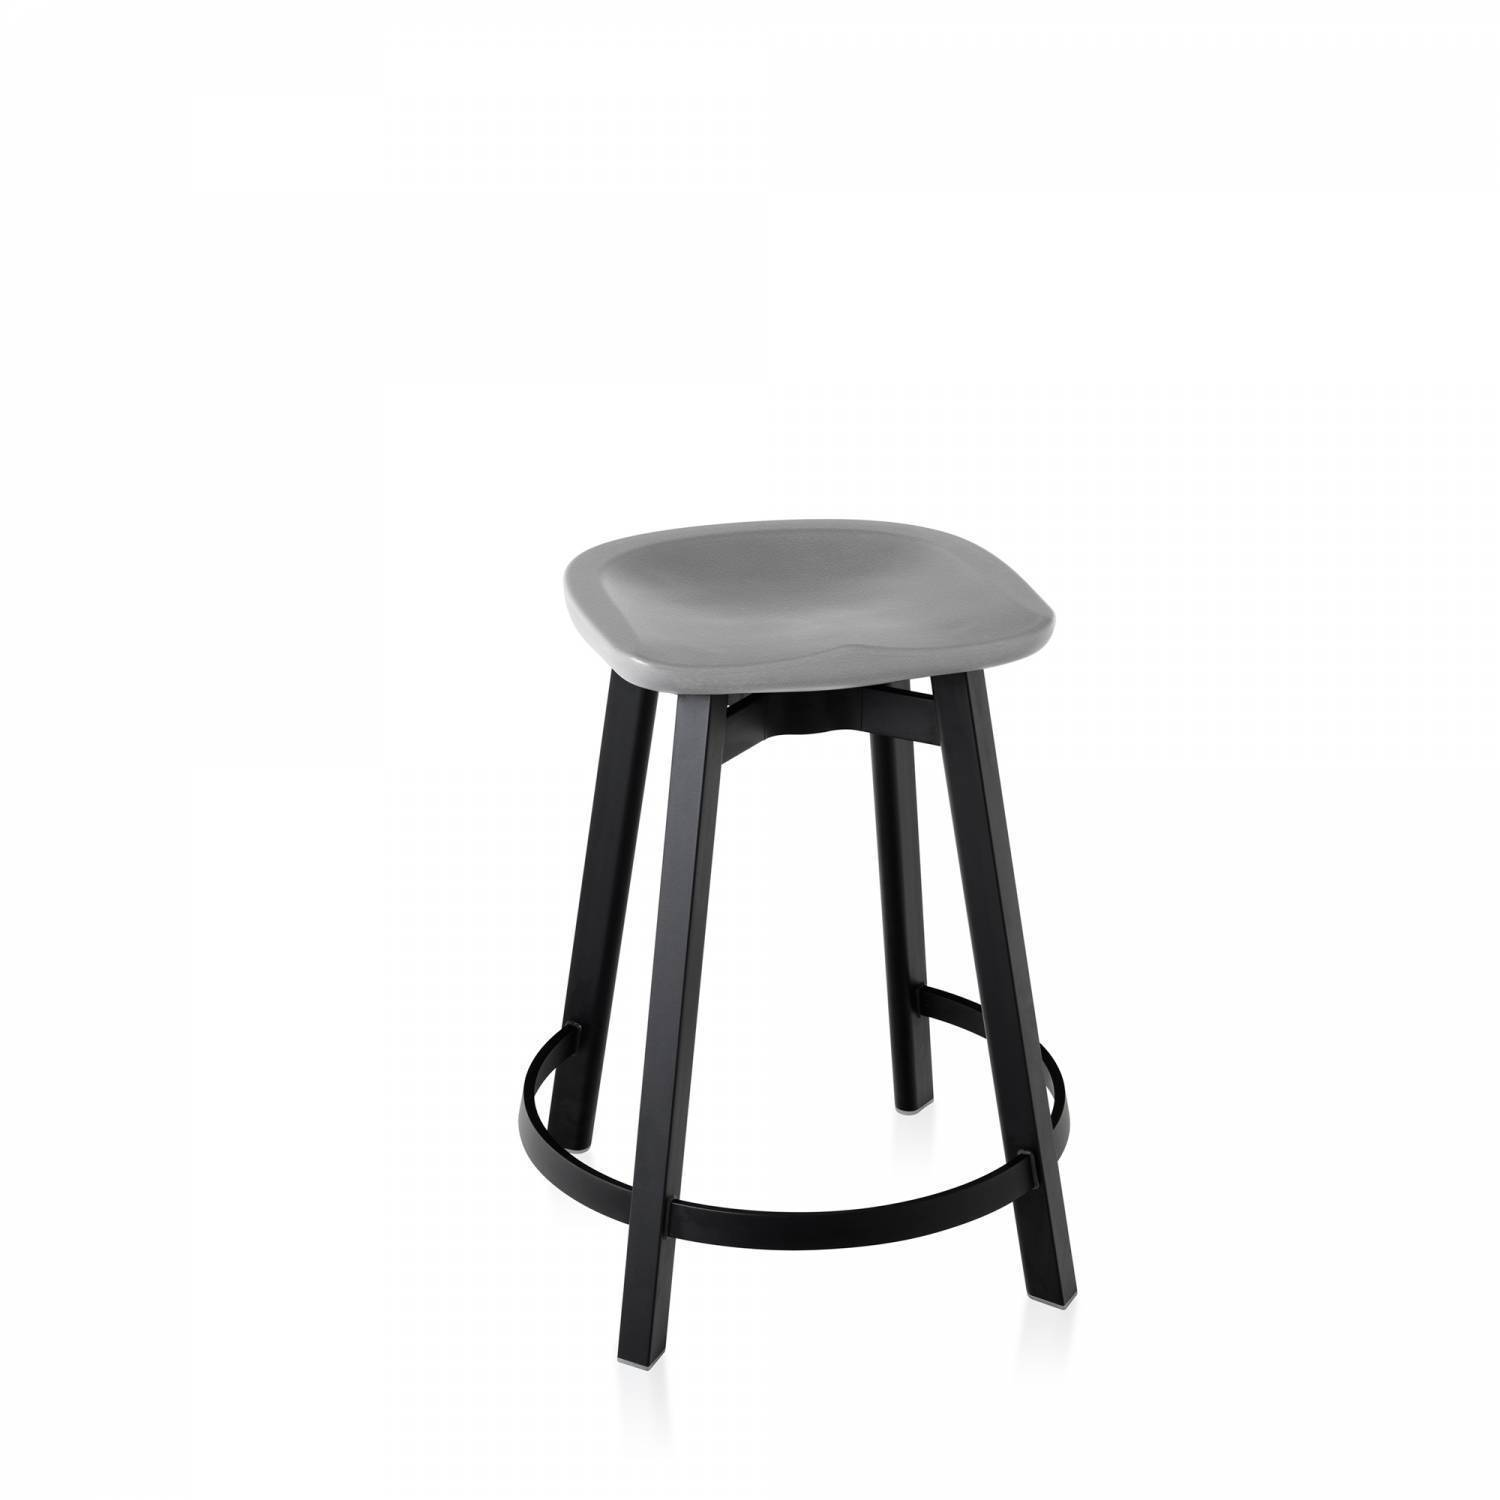 Emeco Su Counter Stool - Eco Concrete Furniture Emeco Eco Concrete Black Anodized